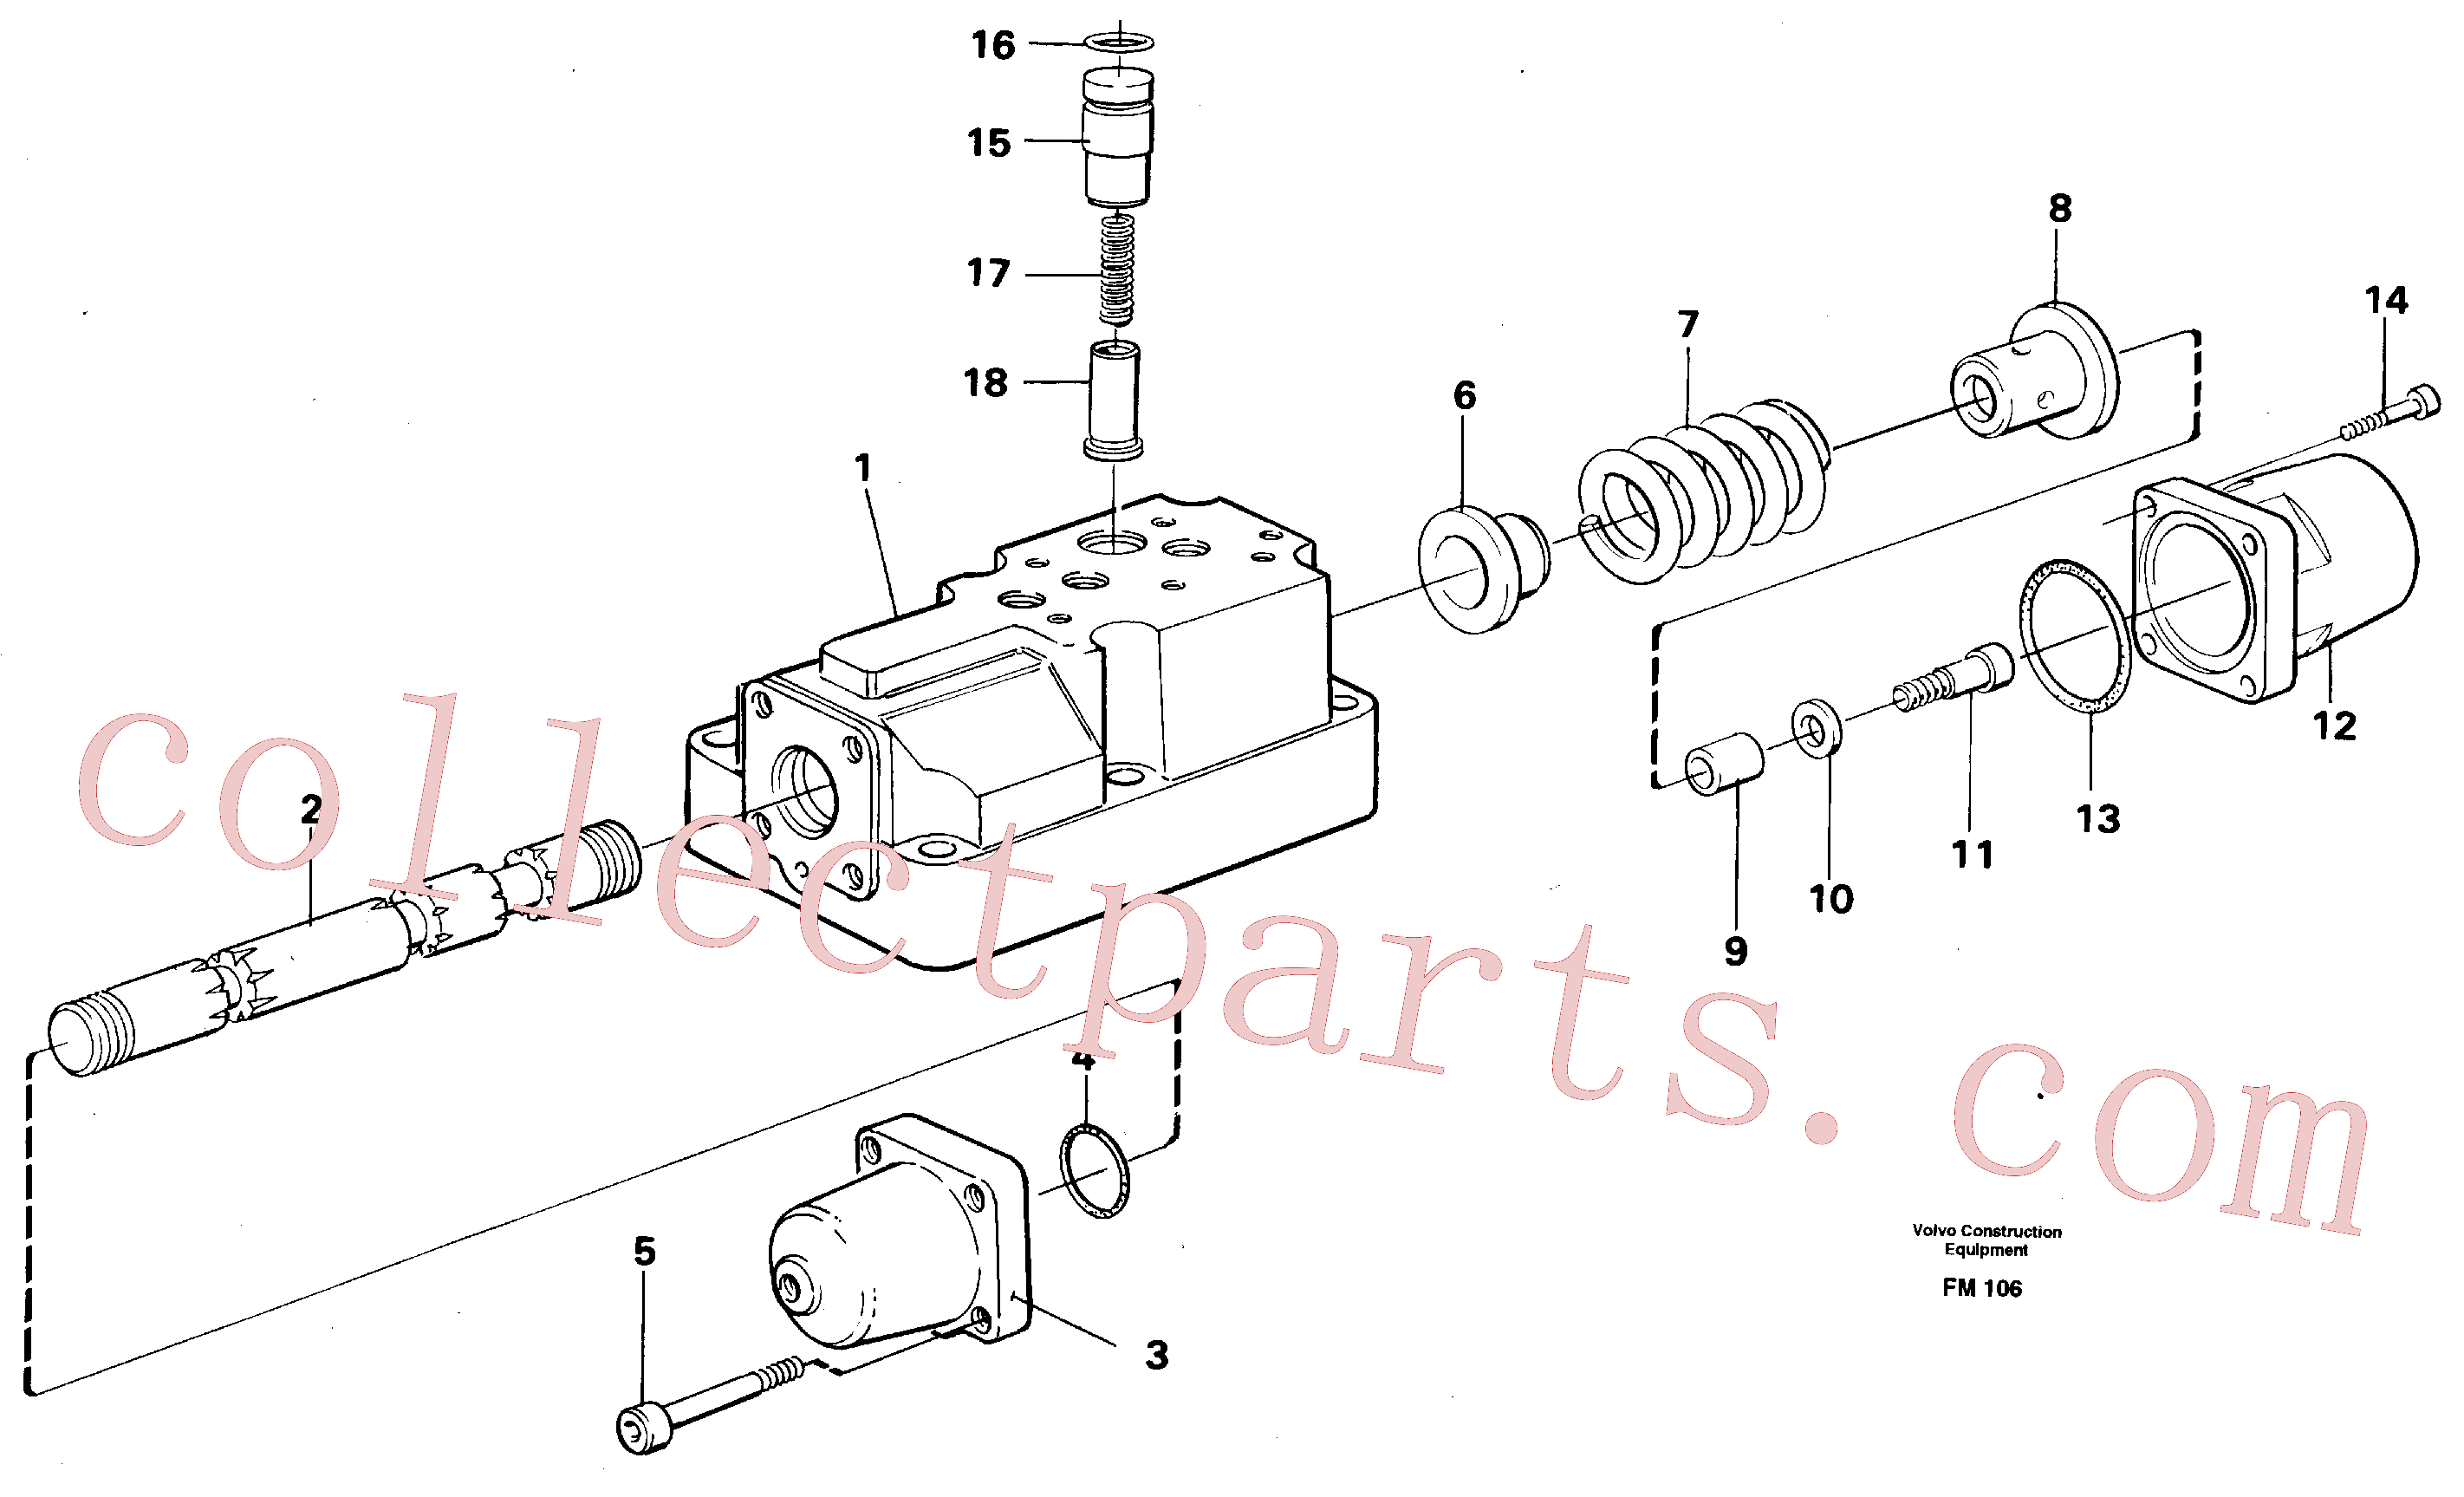 VOE14211759 for Volvo Four-way valve(FM106 assembly)